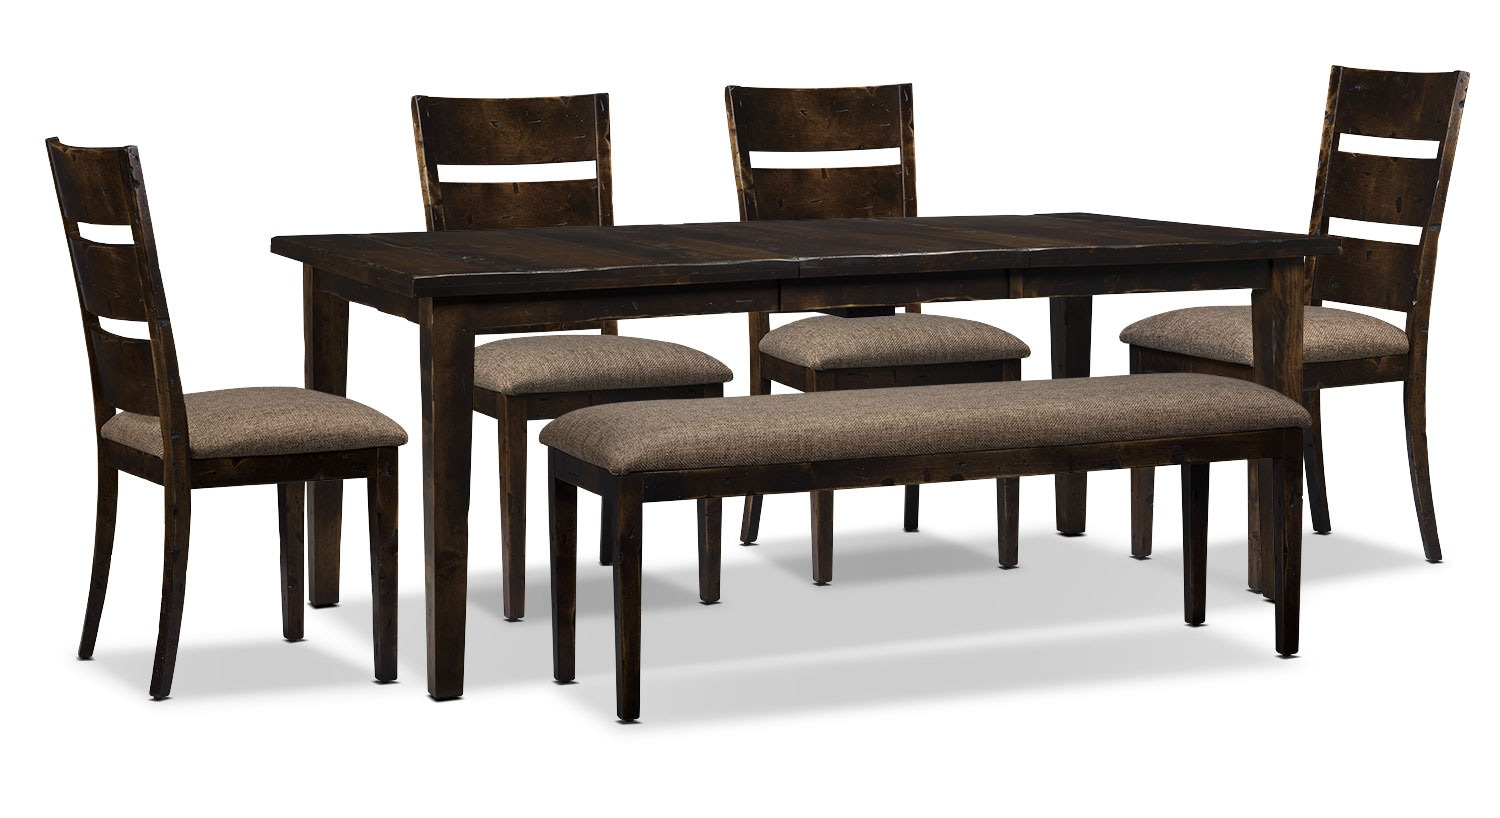 Bordeaux 6-Piece Dining Package with Single-Leaf Table – Brown